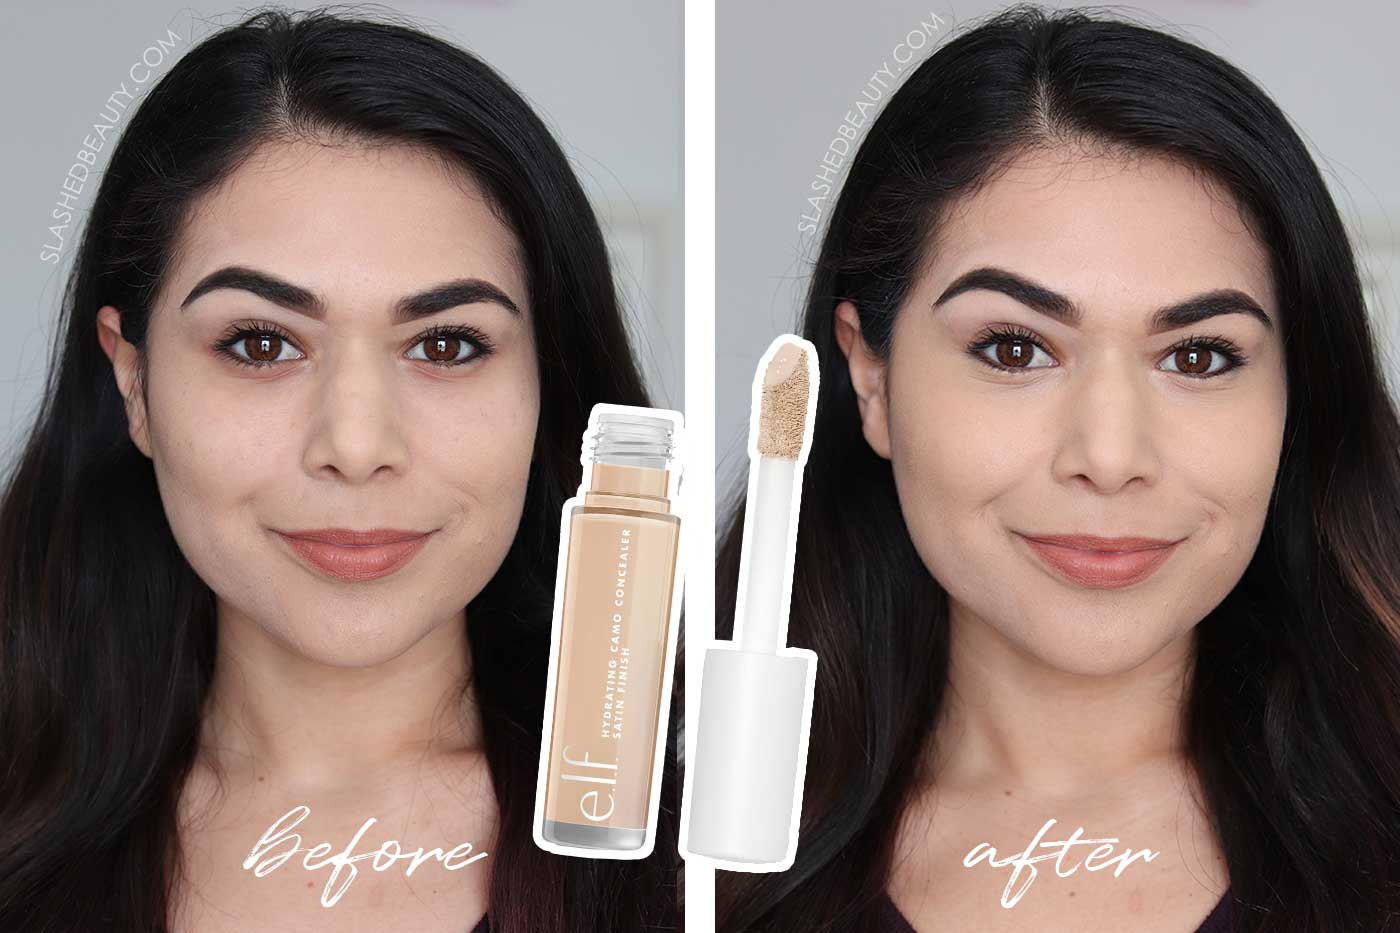 e.l.f. Hydrating Camo Concealer Review & Swatches | Before & After using e.l.f. Hydrating Camo Concealer on undereyes | Slashed Beauty